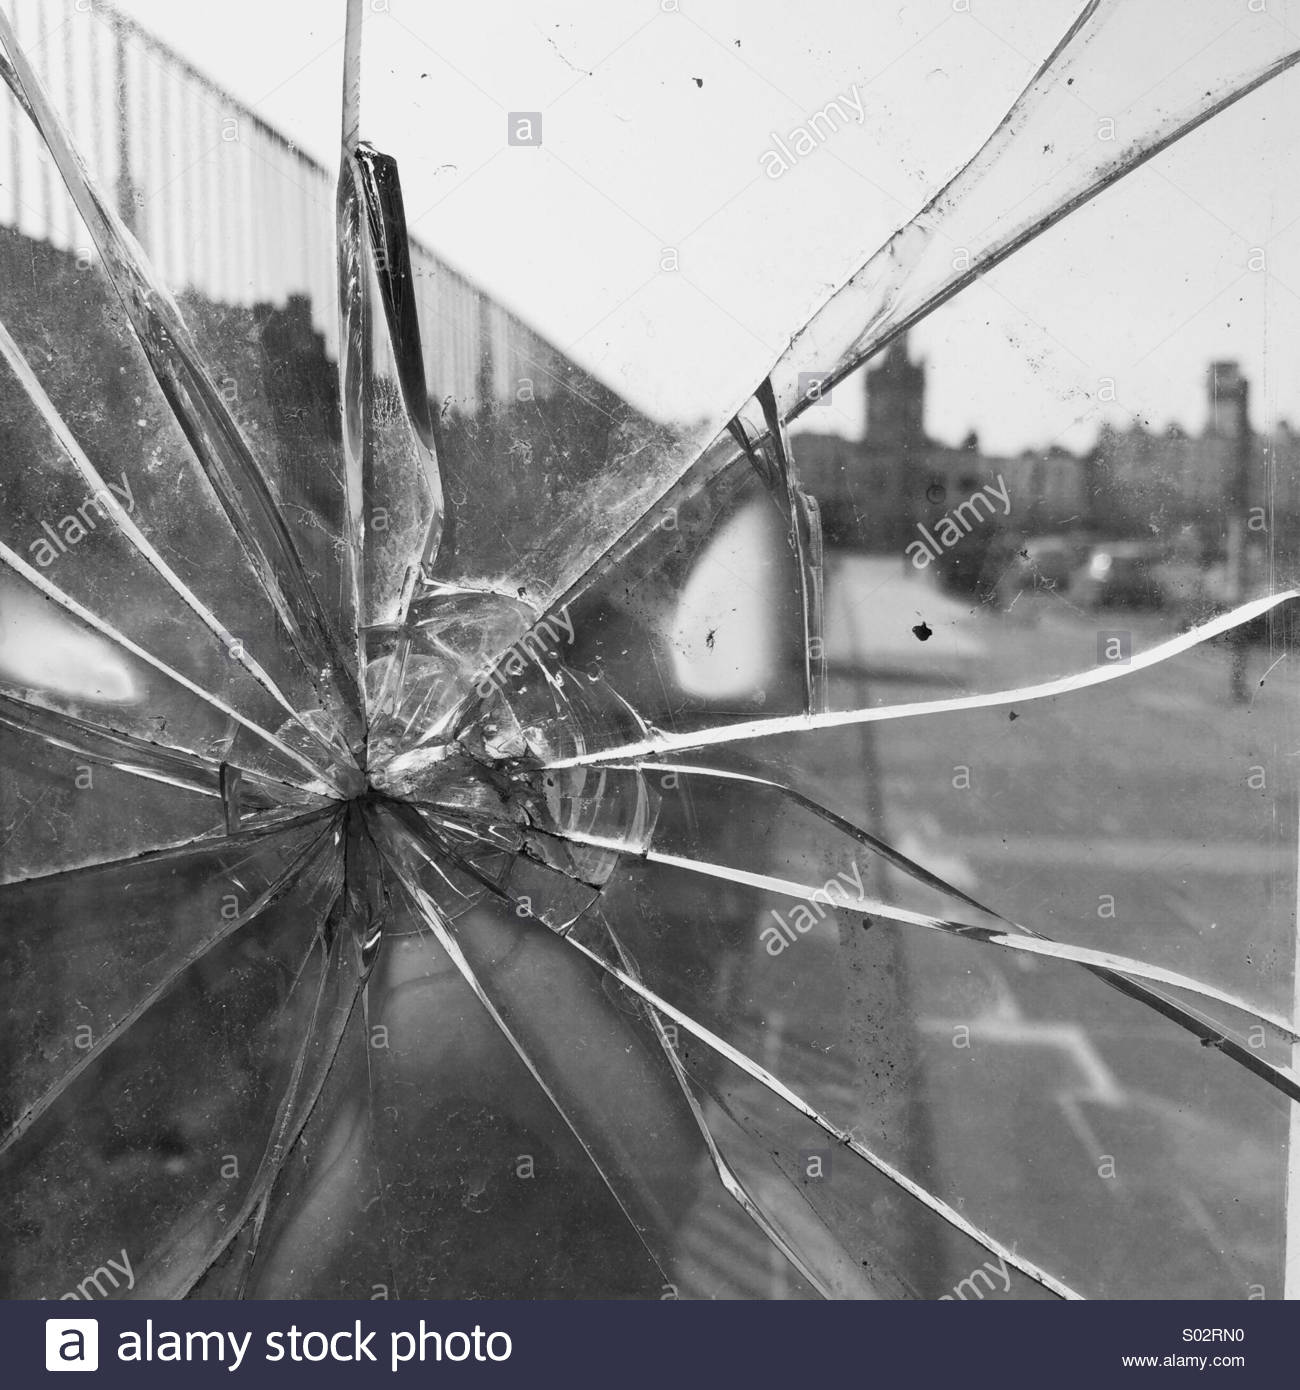 Cracked Glass in a Window Pane - Stock Image